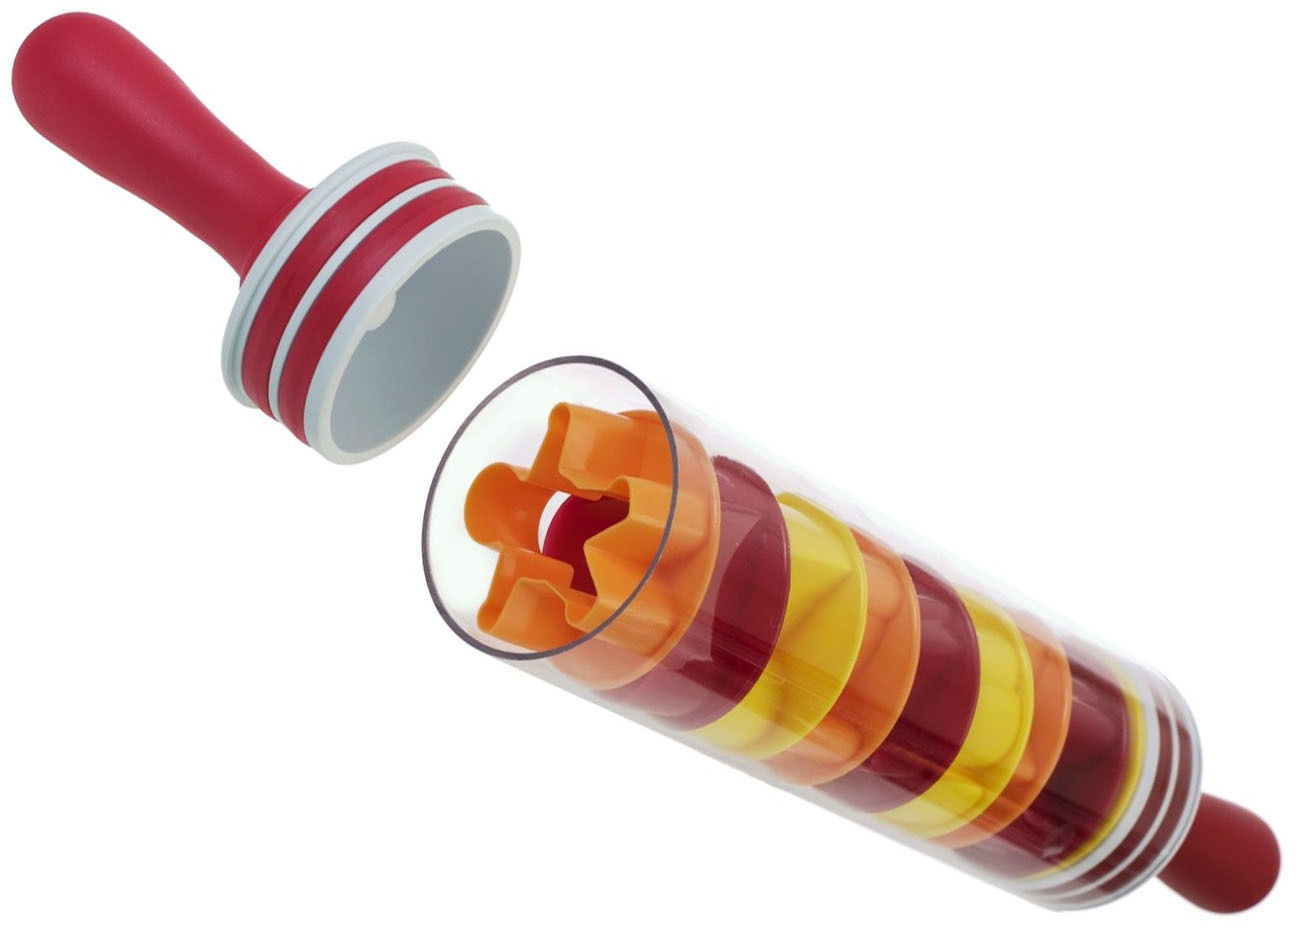 Kabalo ROLL and STORE ROLLING PIN with 9 Cookie Cutters incl - hollow, can fill with ice